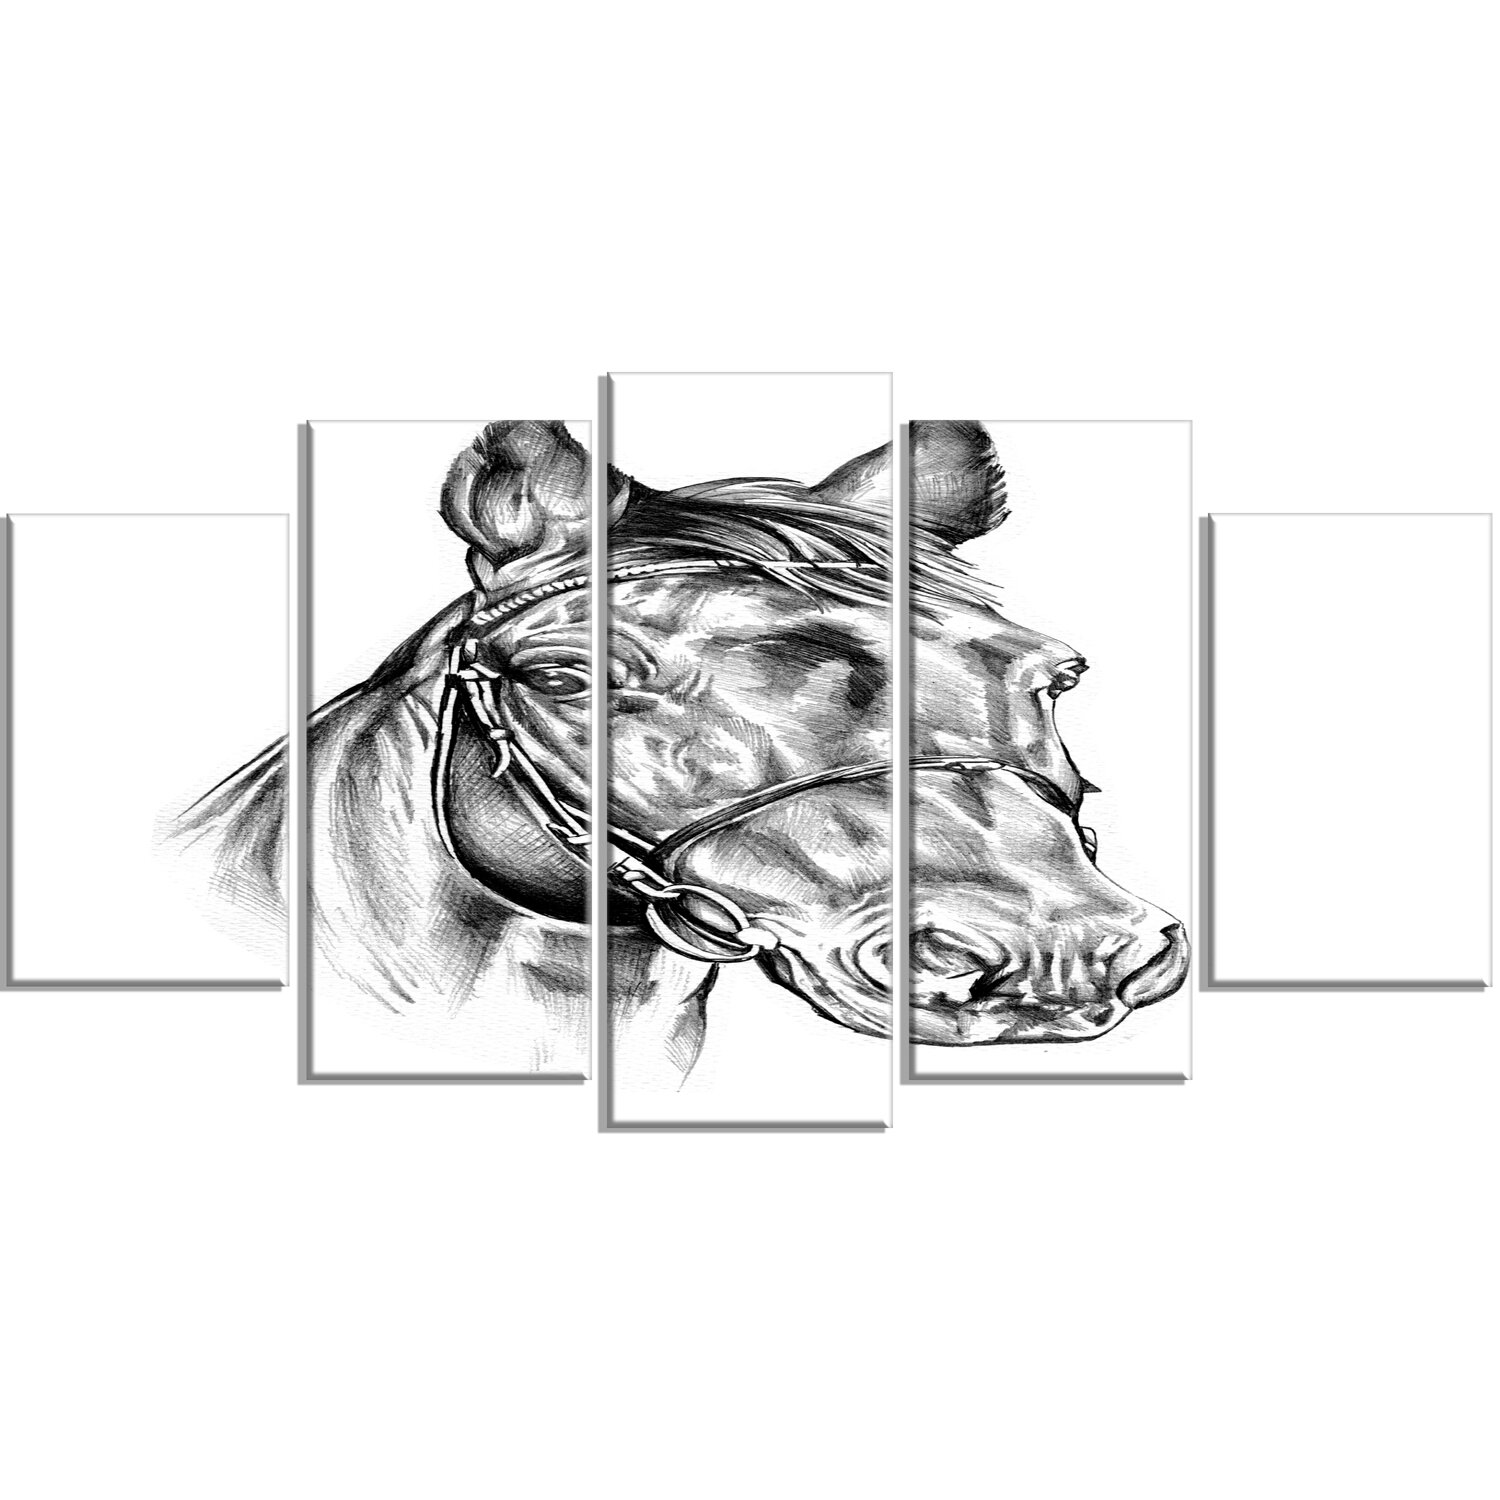 Designart freehand horse head pencil drawing 5 piece wall art on wrapped canvas set wayfair ca